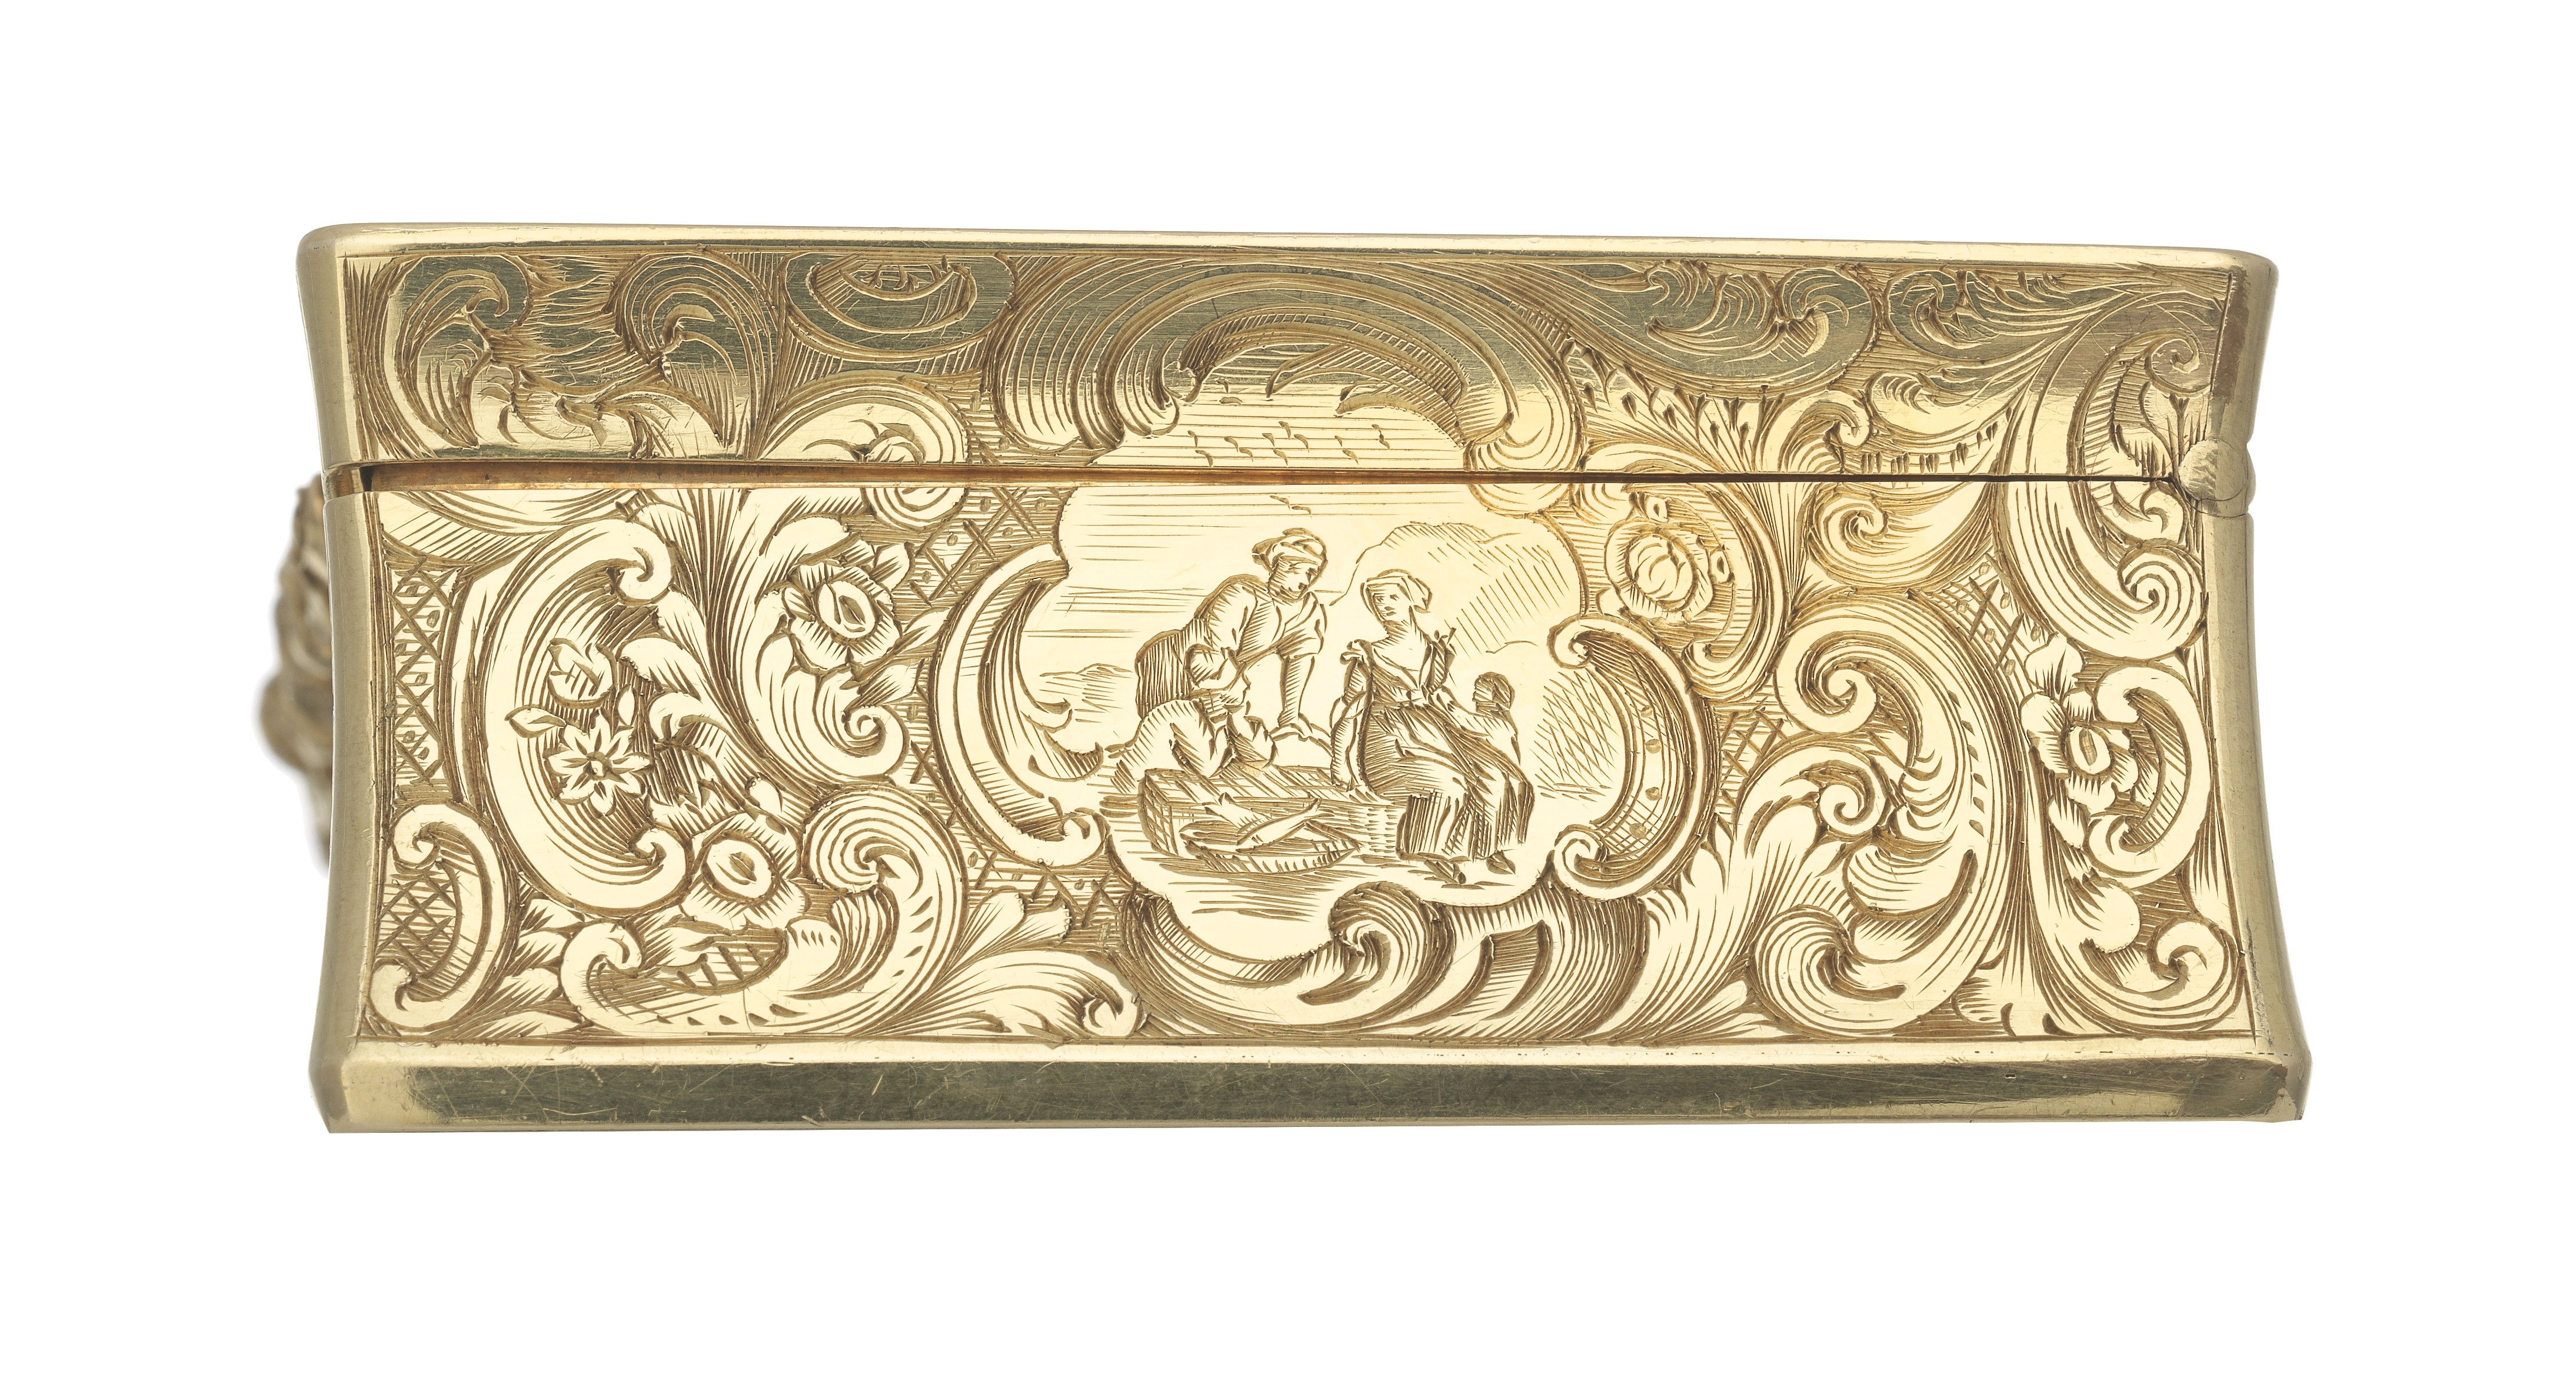 Lot 1 - A Victorian 18 carat gold box Charles Reily & George Storer, London 1845